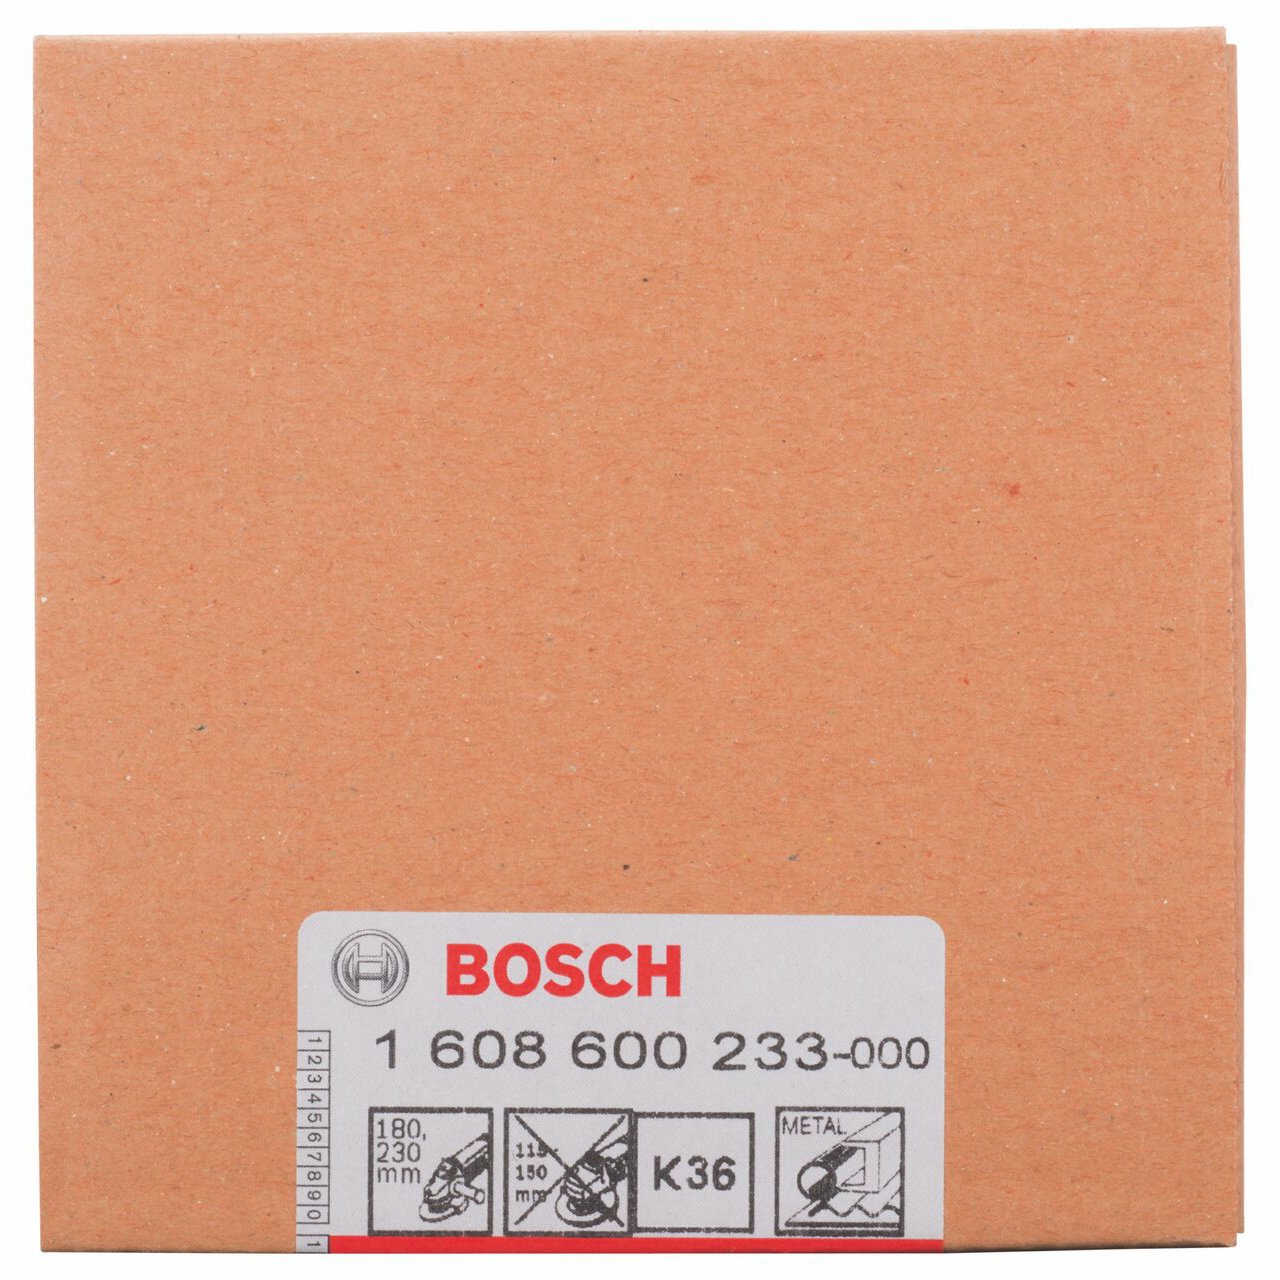 Bosch 1608600233 Abrasive Cup Wheel 4.33inx55mm K36 C /& J Direct GmbH /& Co KG